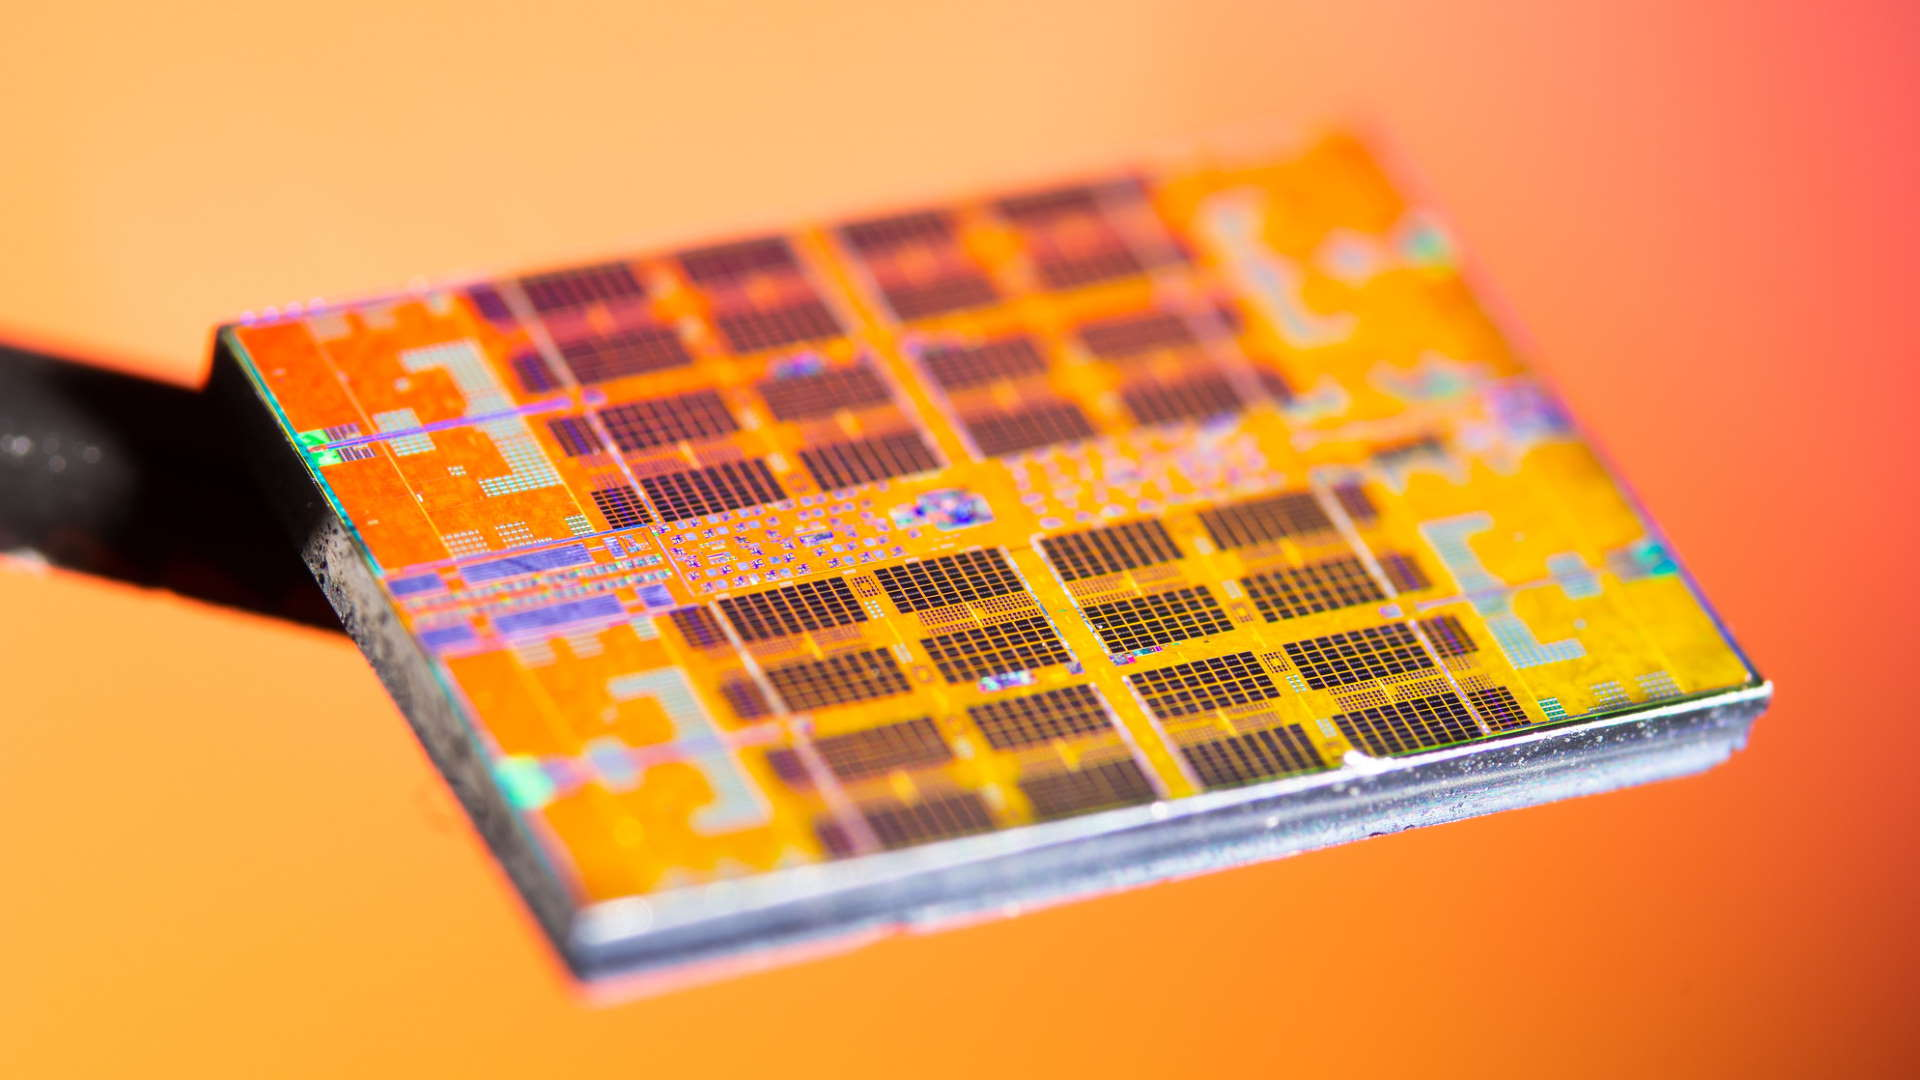 Apple takes priority over Intel and AMD when it comes to TSMC's 3nm production